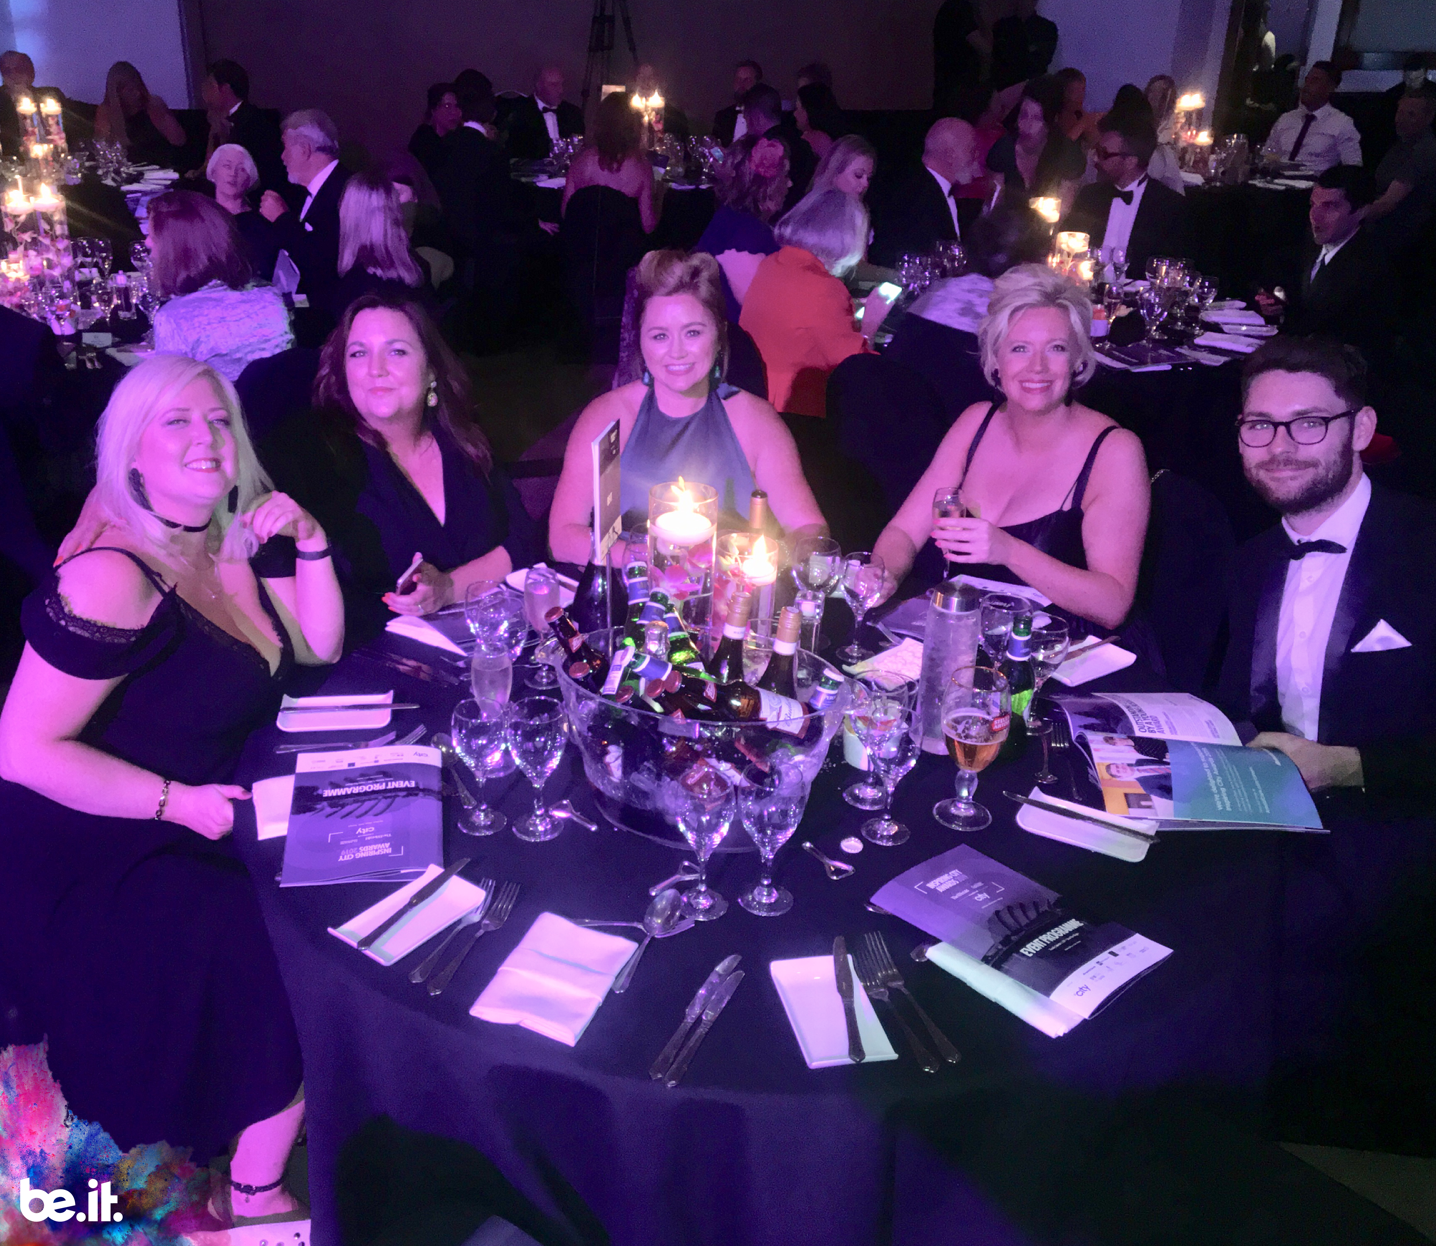 Be-IT table at Inspiring City awards